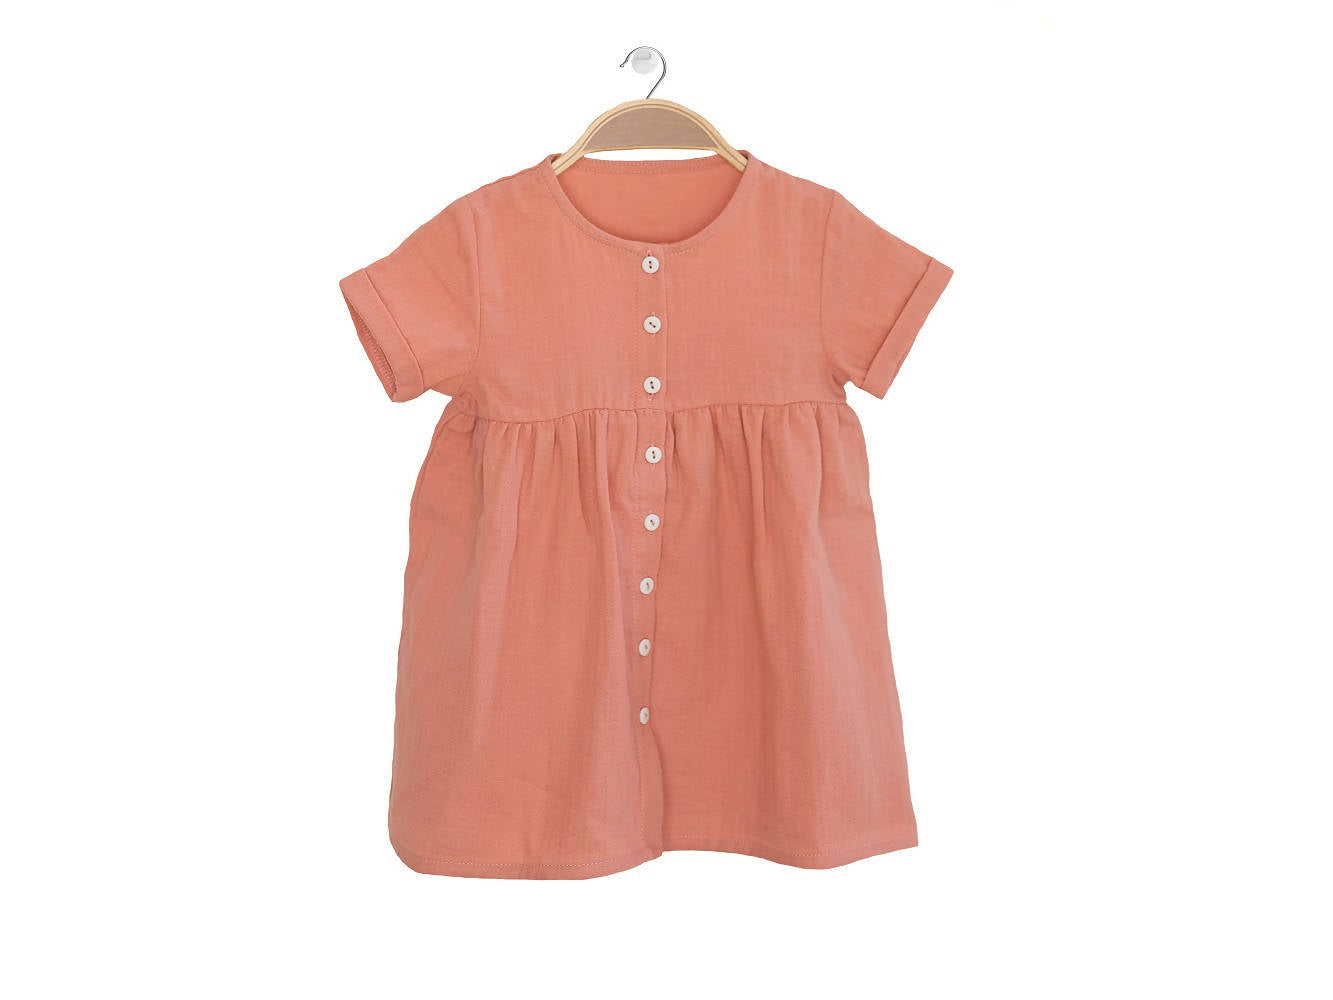 Peter Jo Kids Organic Dress Harmony for baby girls made of organic muslin cotton peach